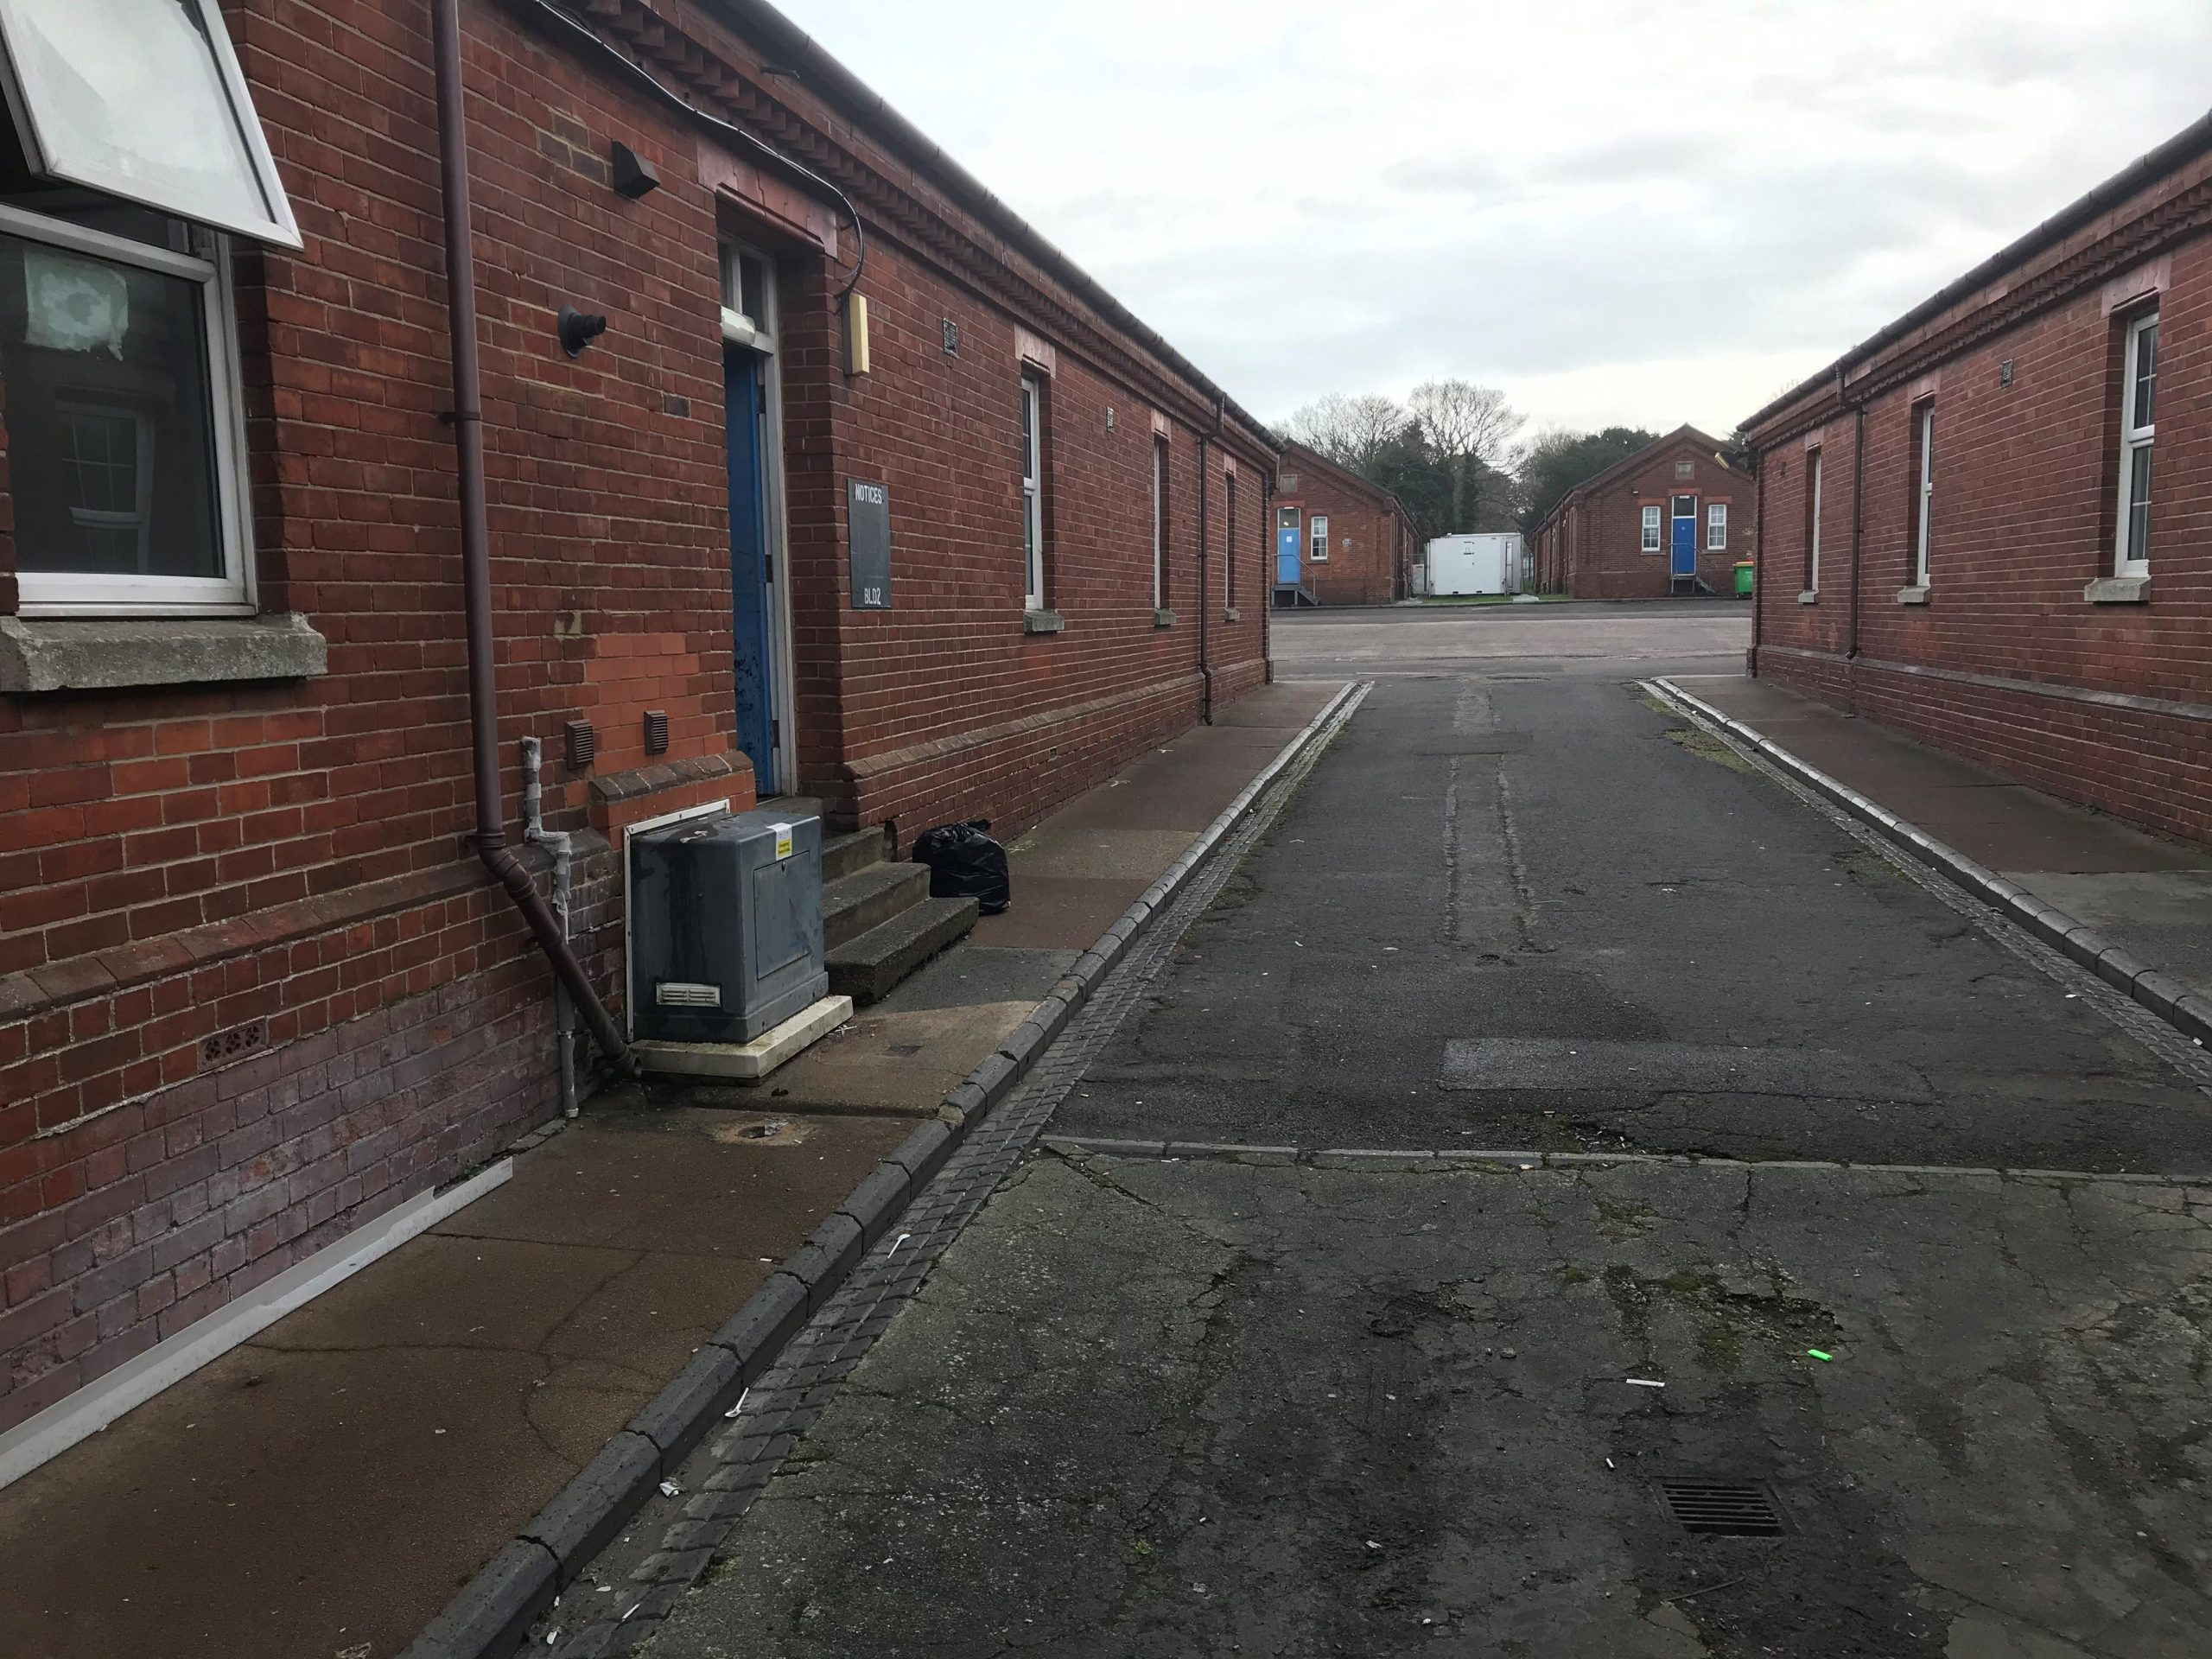 Read more about the article The Home Office is forcing people back to Napier barracks to face 'prison like' conditions